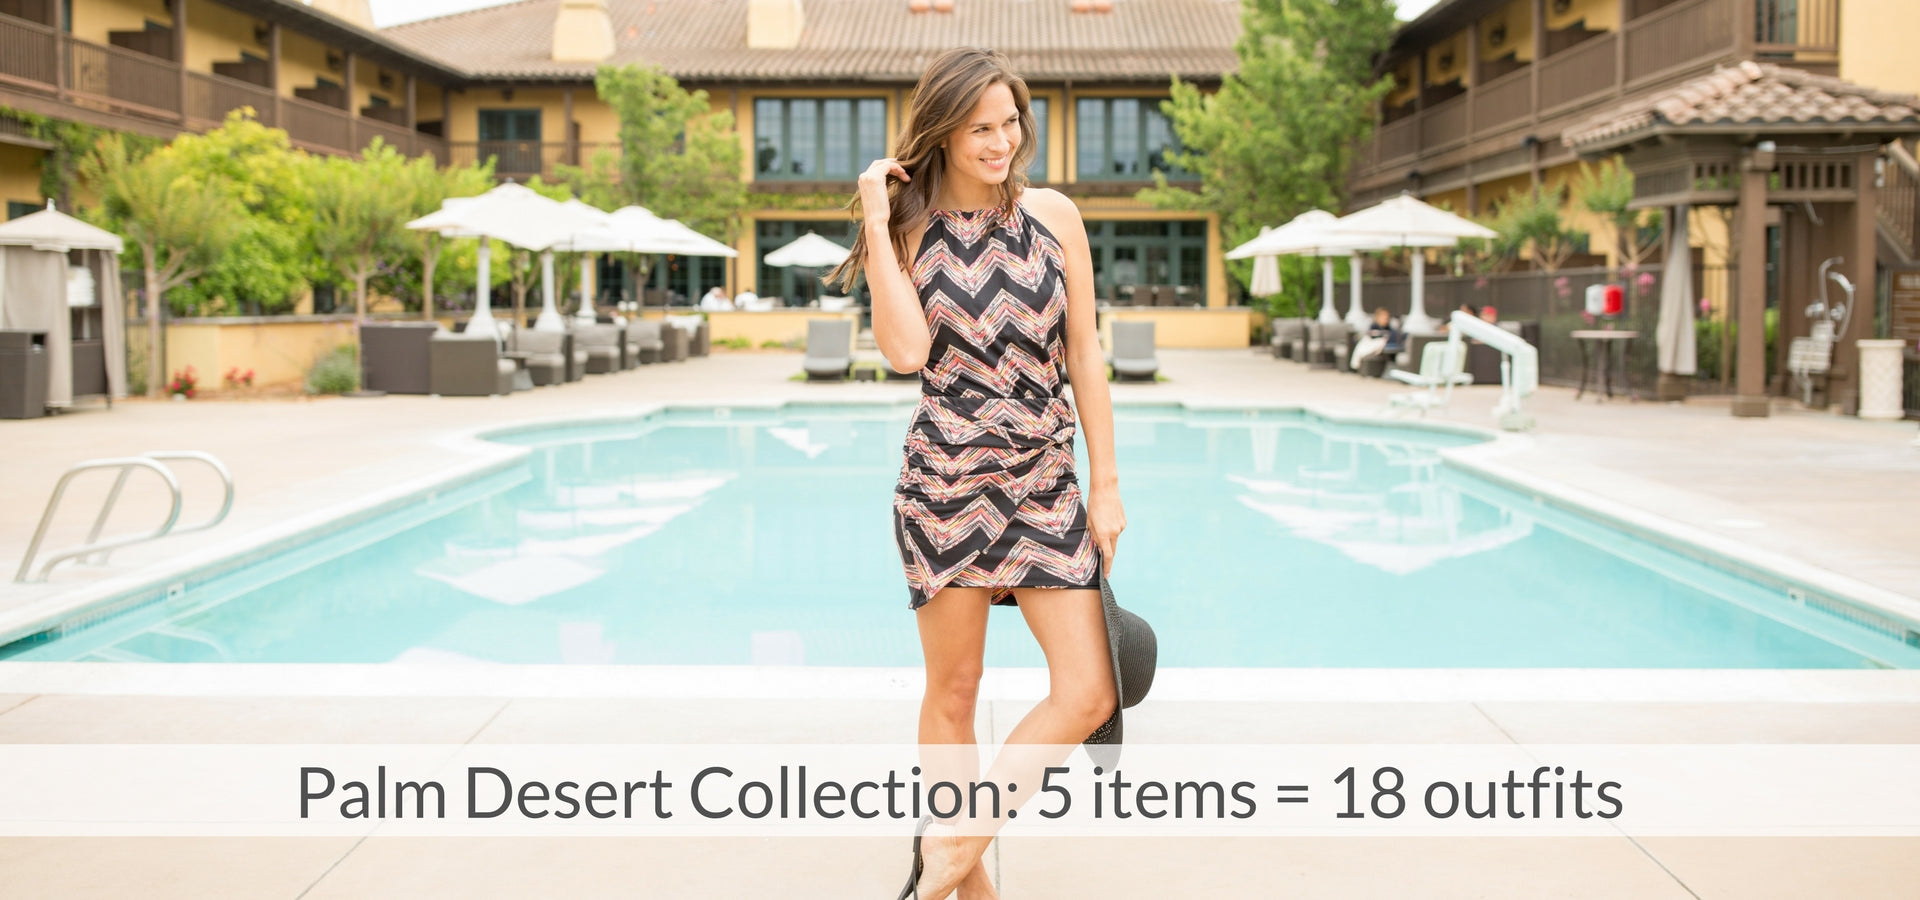 Palm Desert Collection on location